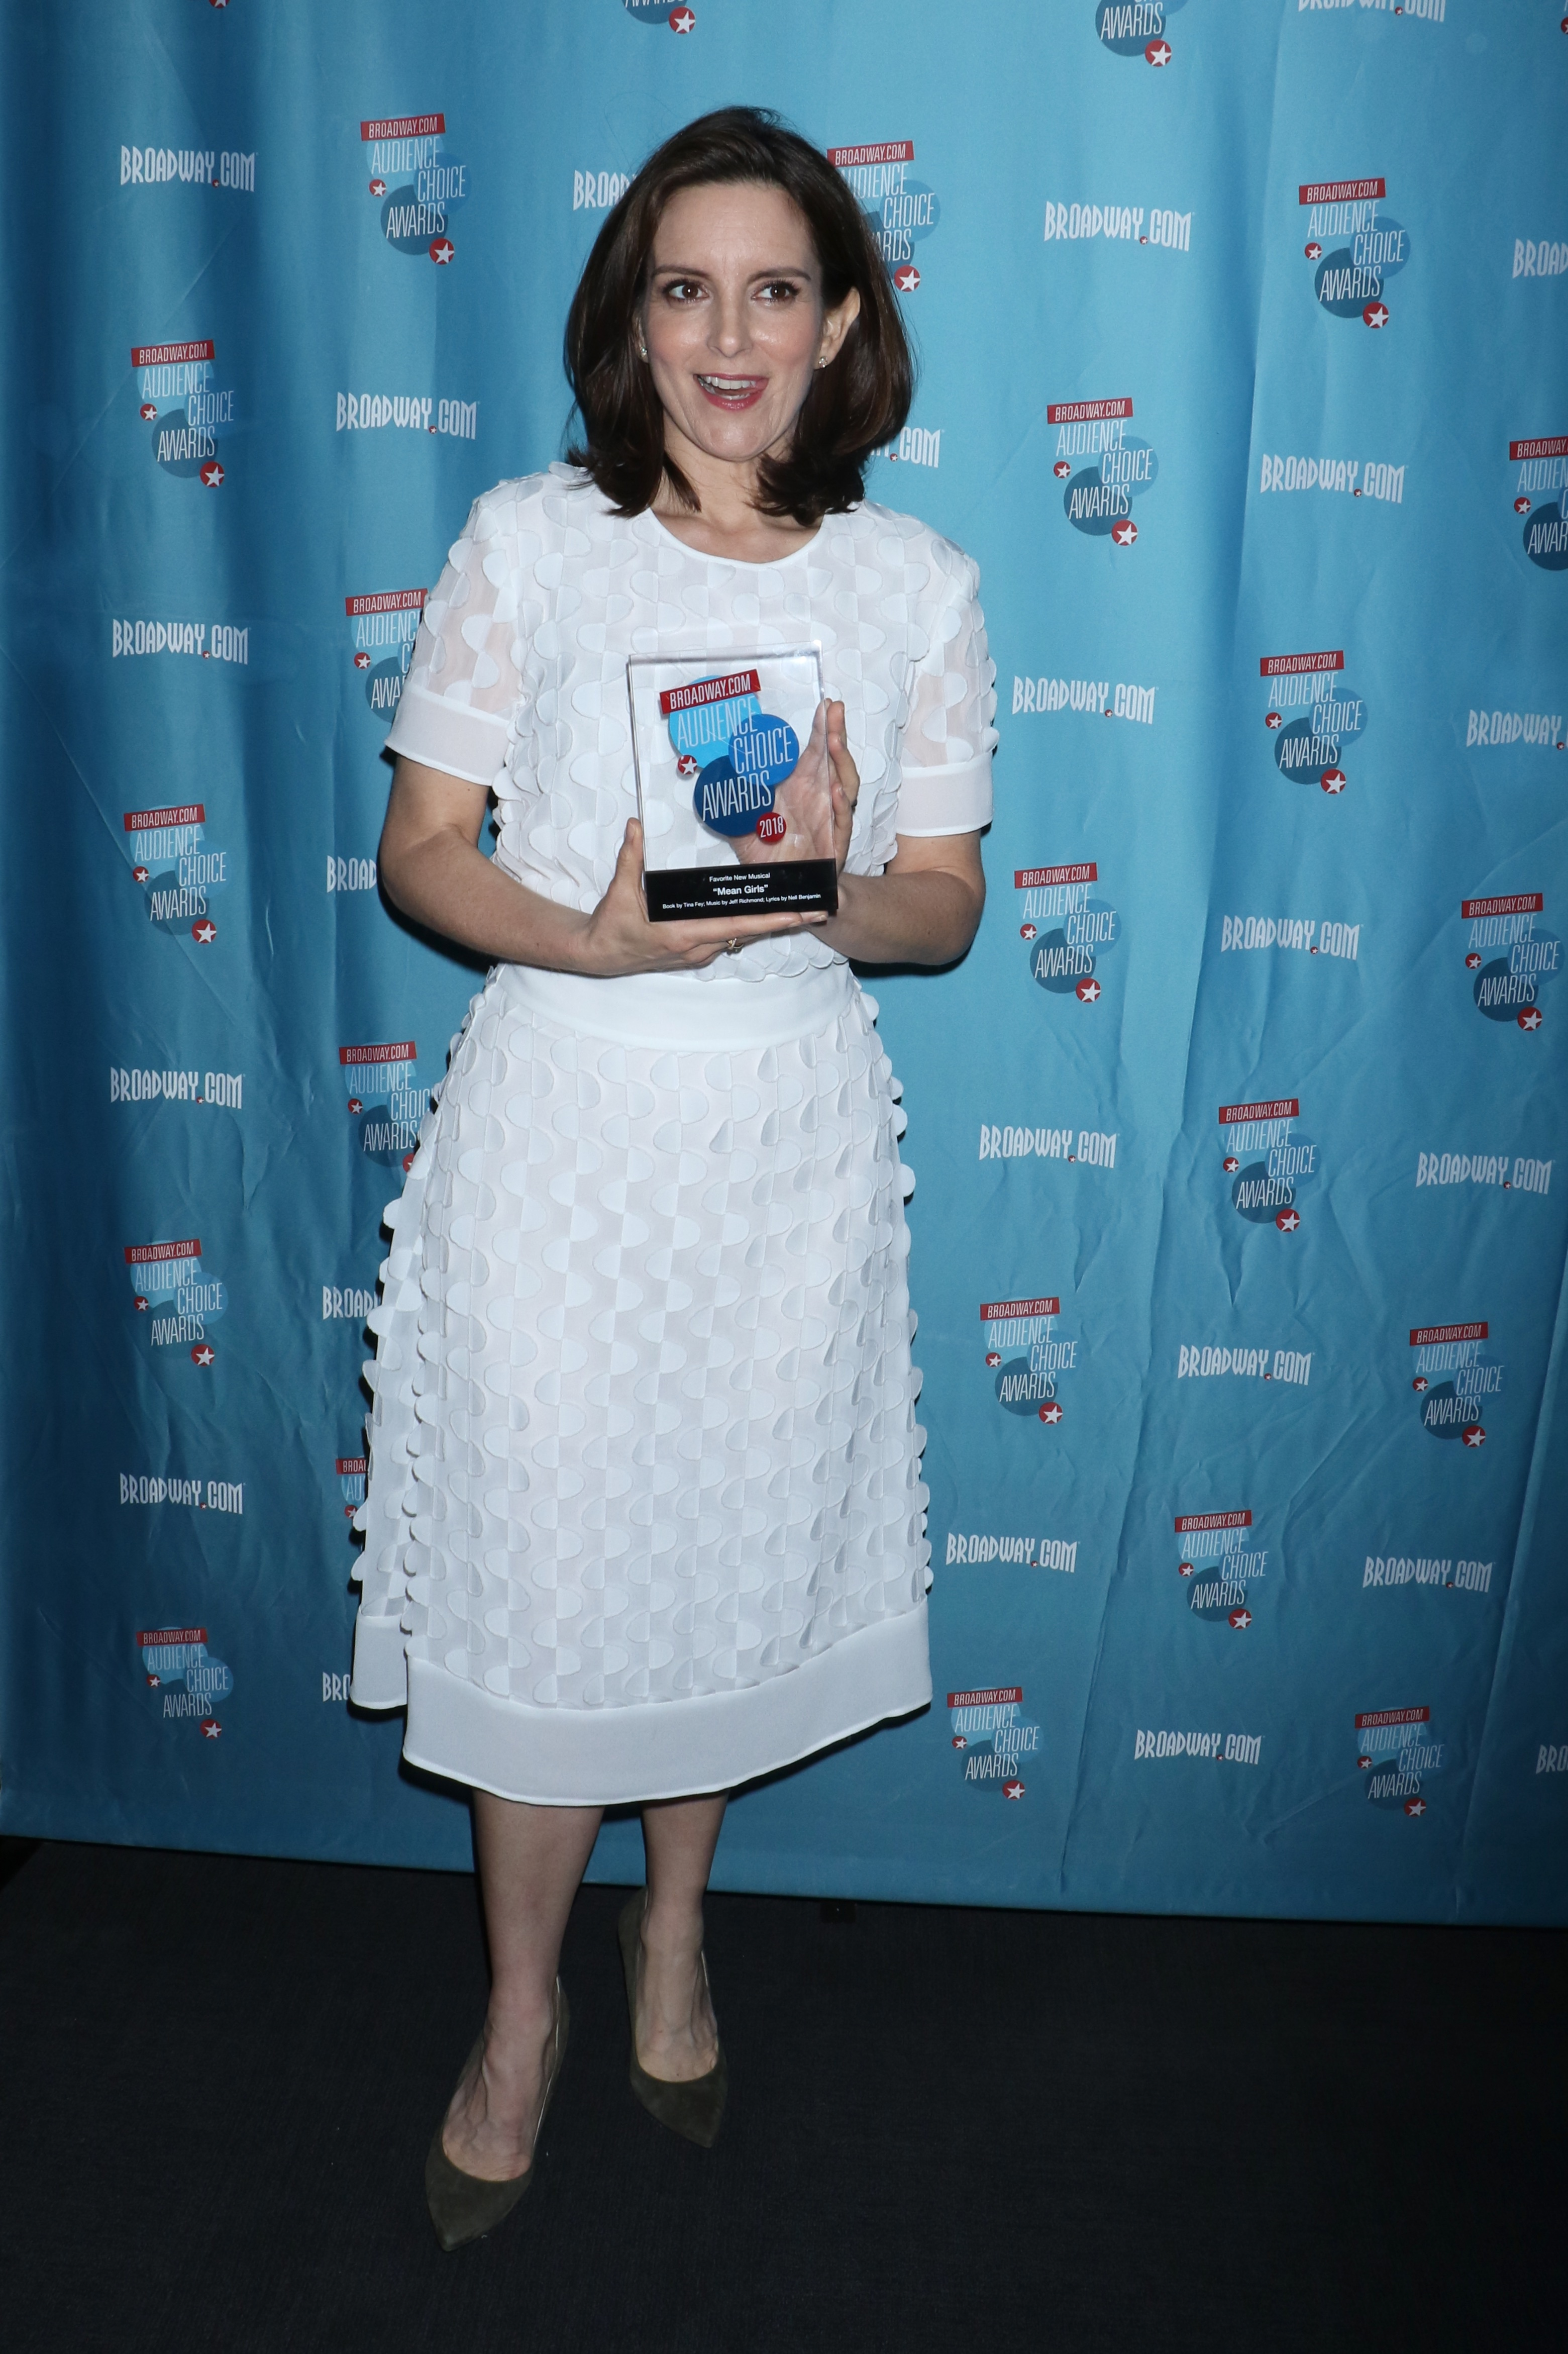 Tina Fey attends the Broadway.com Audience Choice Awards in New York City on May 24, 2018.